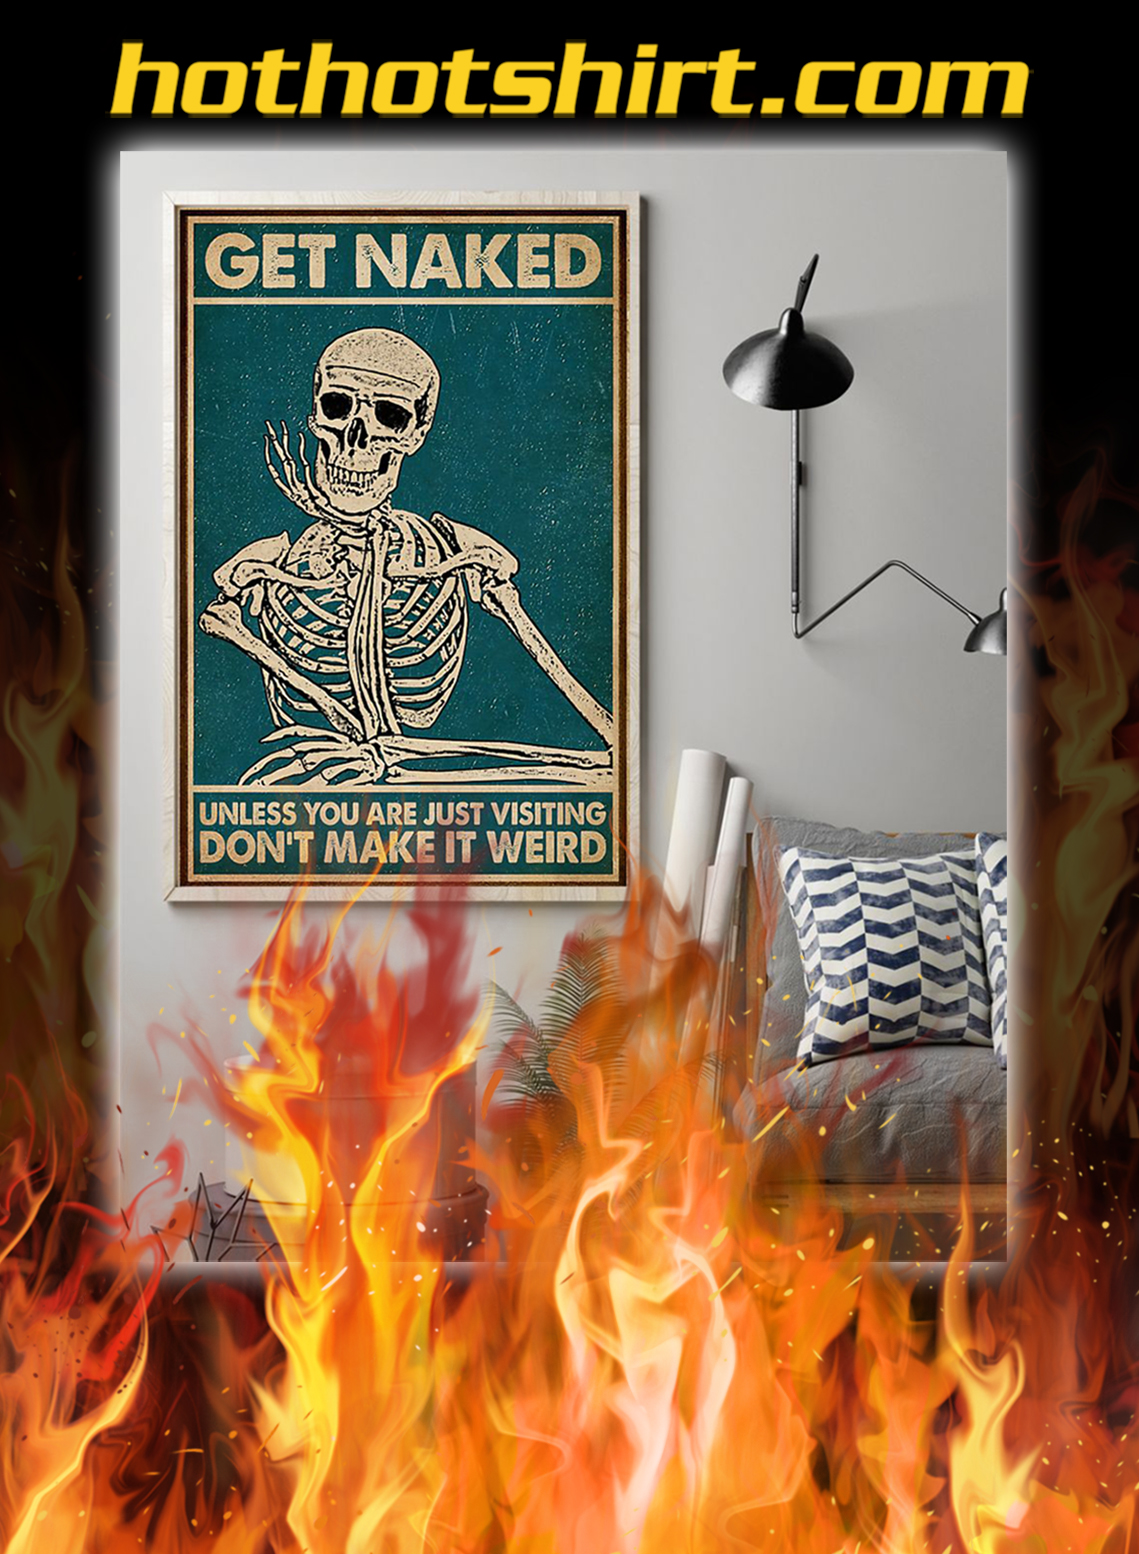 Get naked unless you are just visiting don't make it weird poster- A1